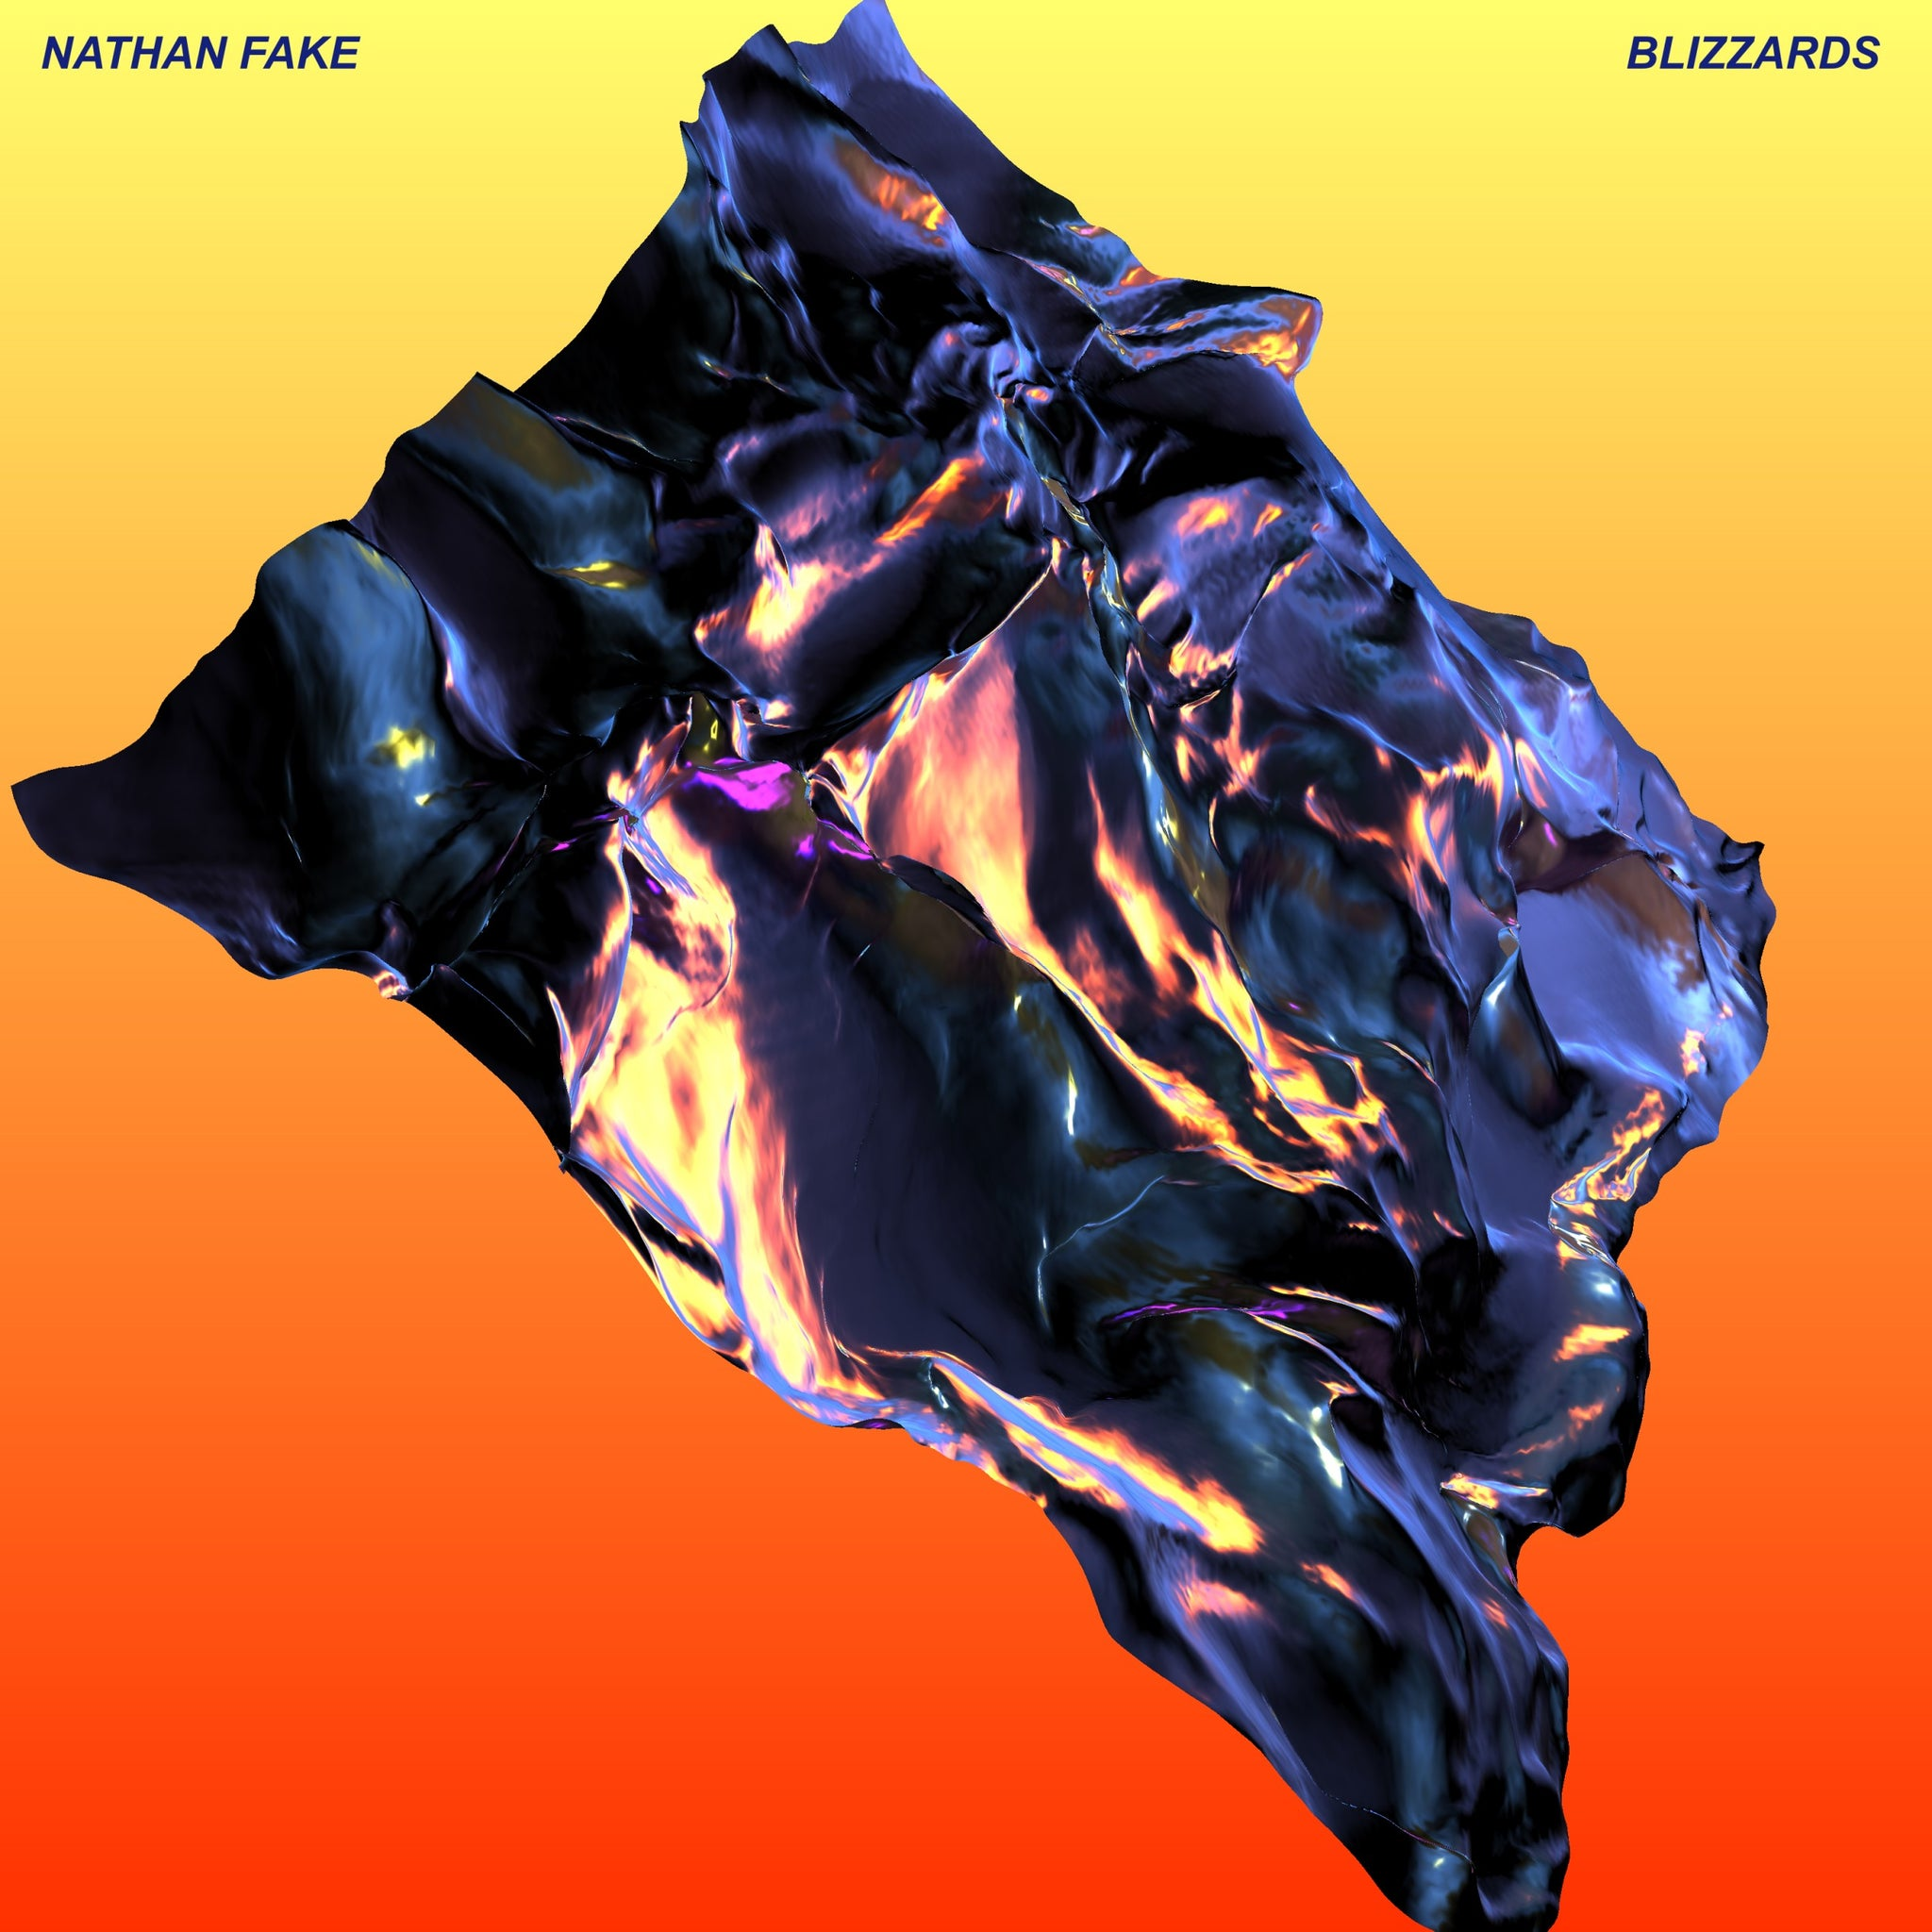 Nathan Fake 'Blizzards' 2LP